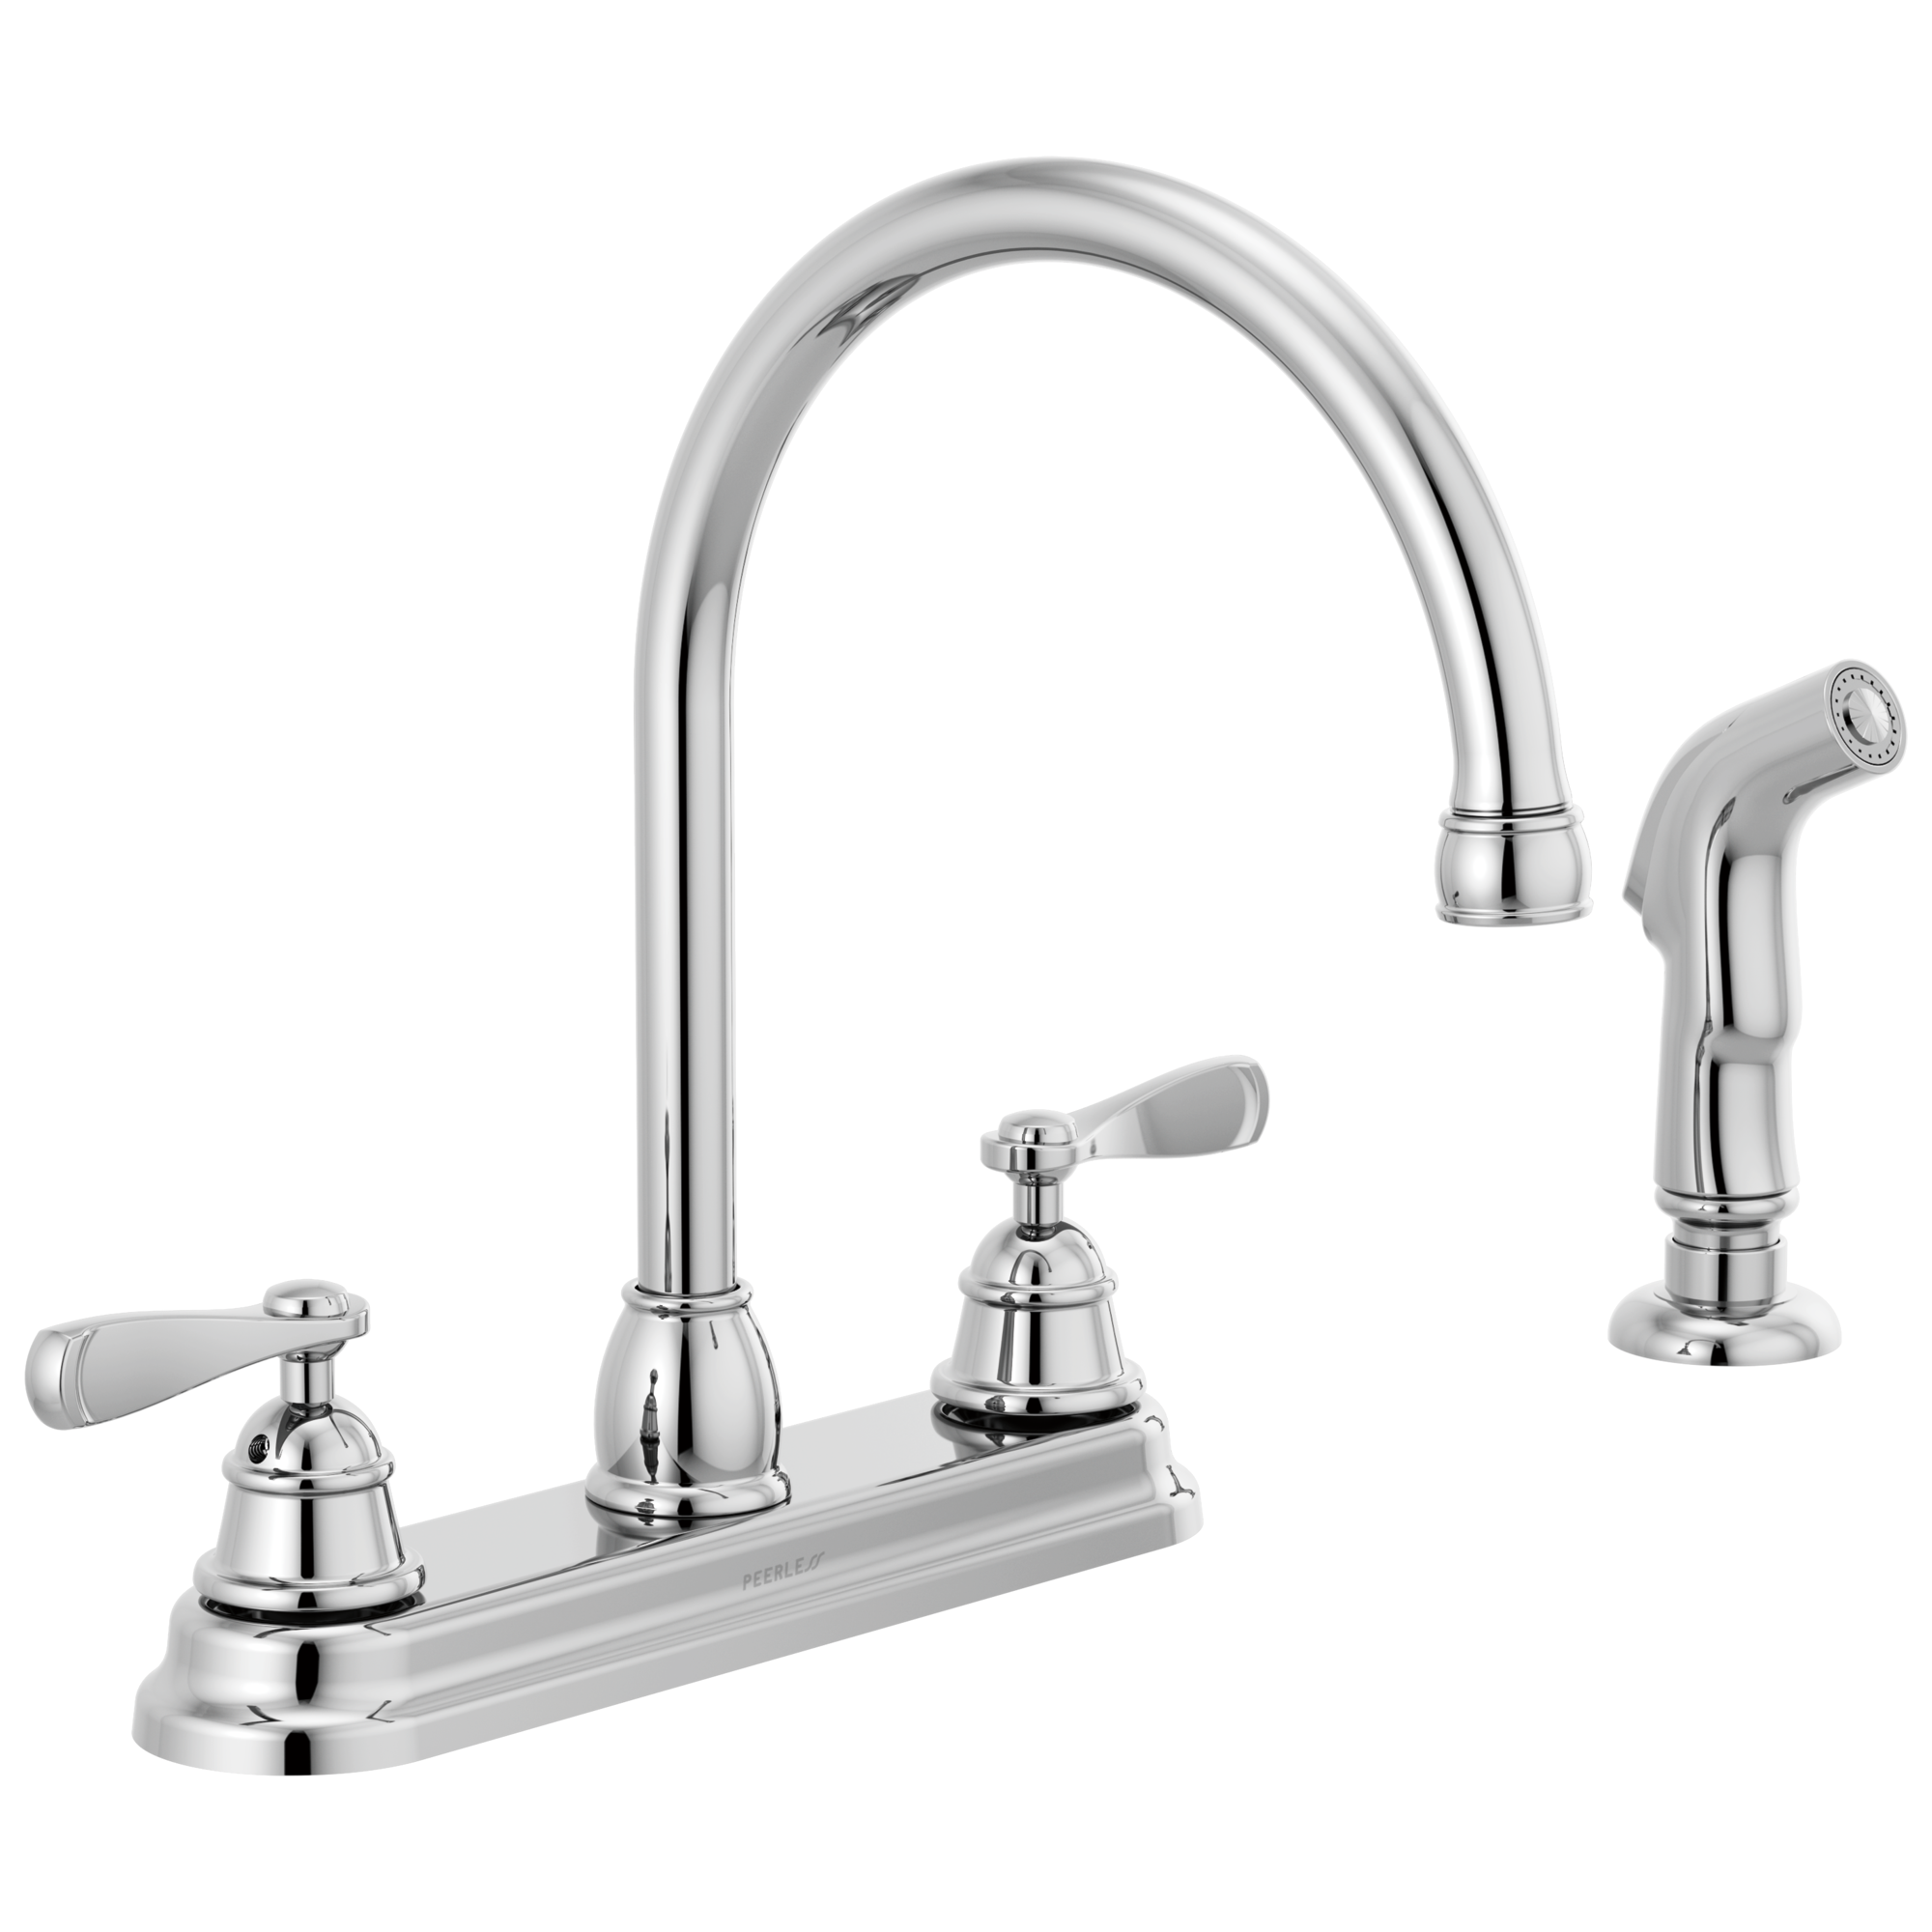 Peerless Two Handle Deck-mount Kitchen Faucet in Chrome